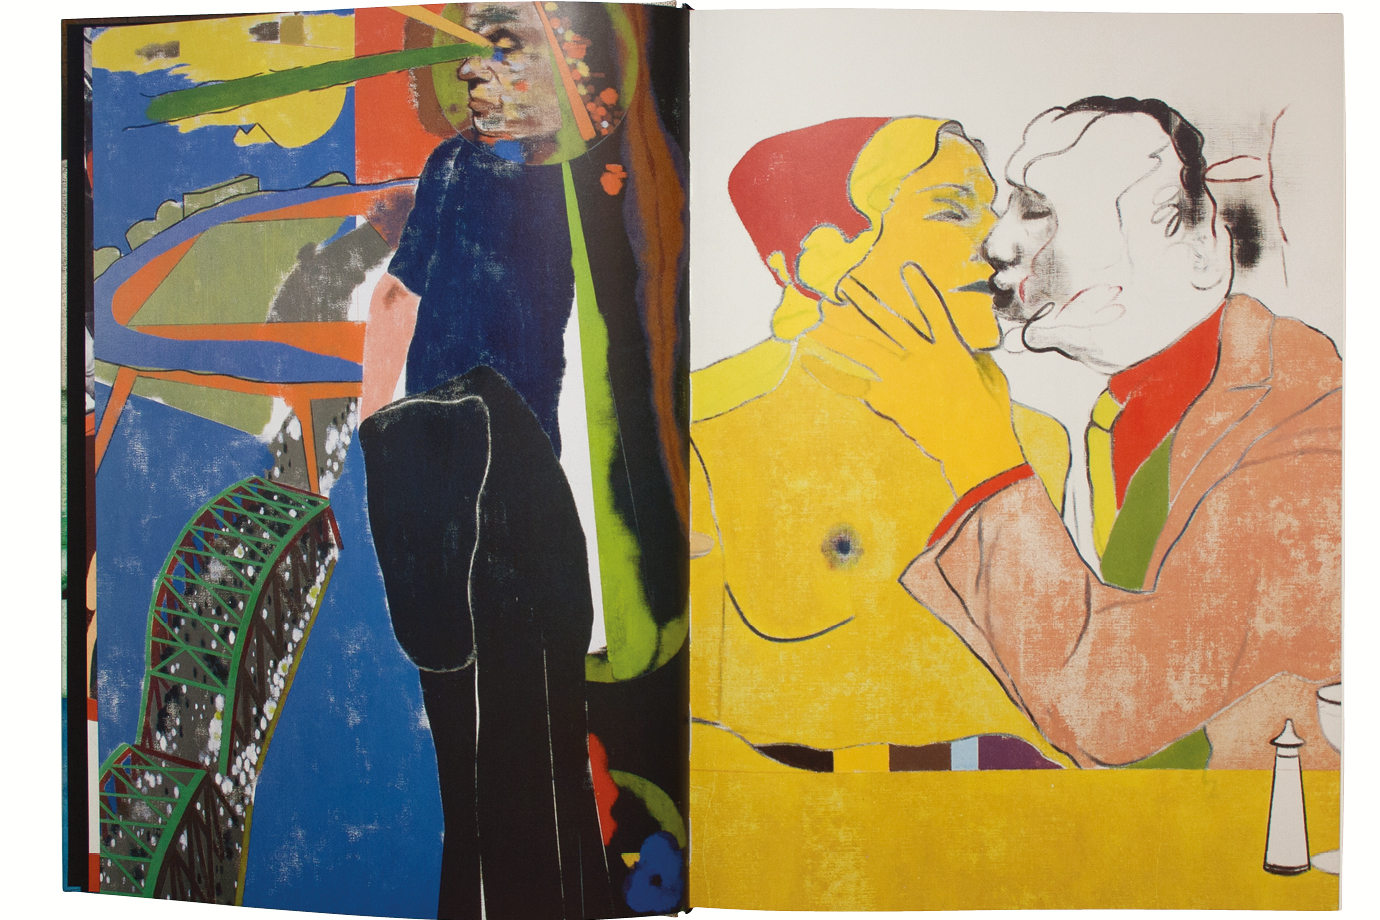 http://e-o-t.de/wordpress/wp-content/uploads/2017/07/eot-2012-Kitaj-Book-4.jpg